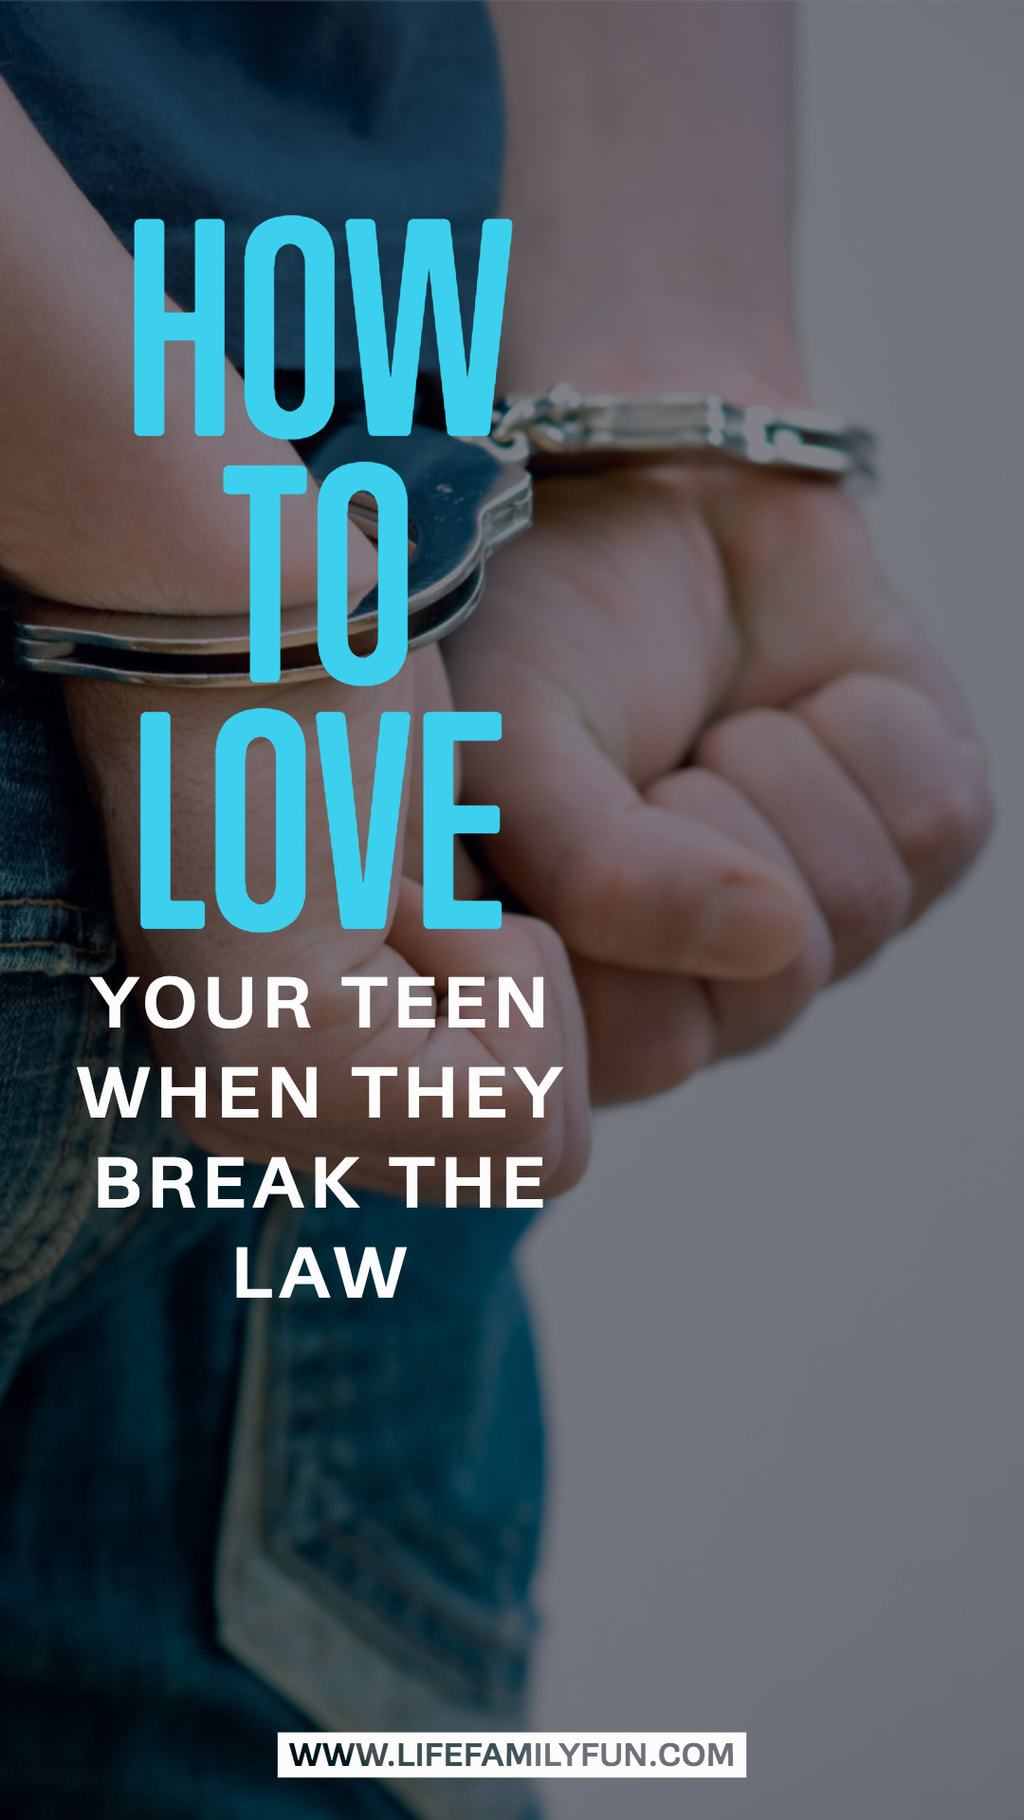 Love your teen when they break the law